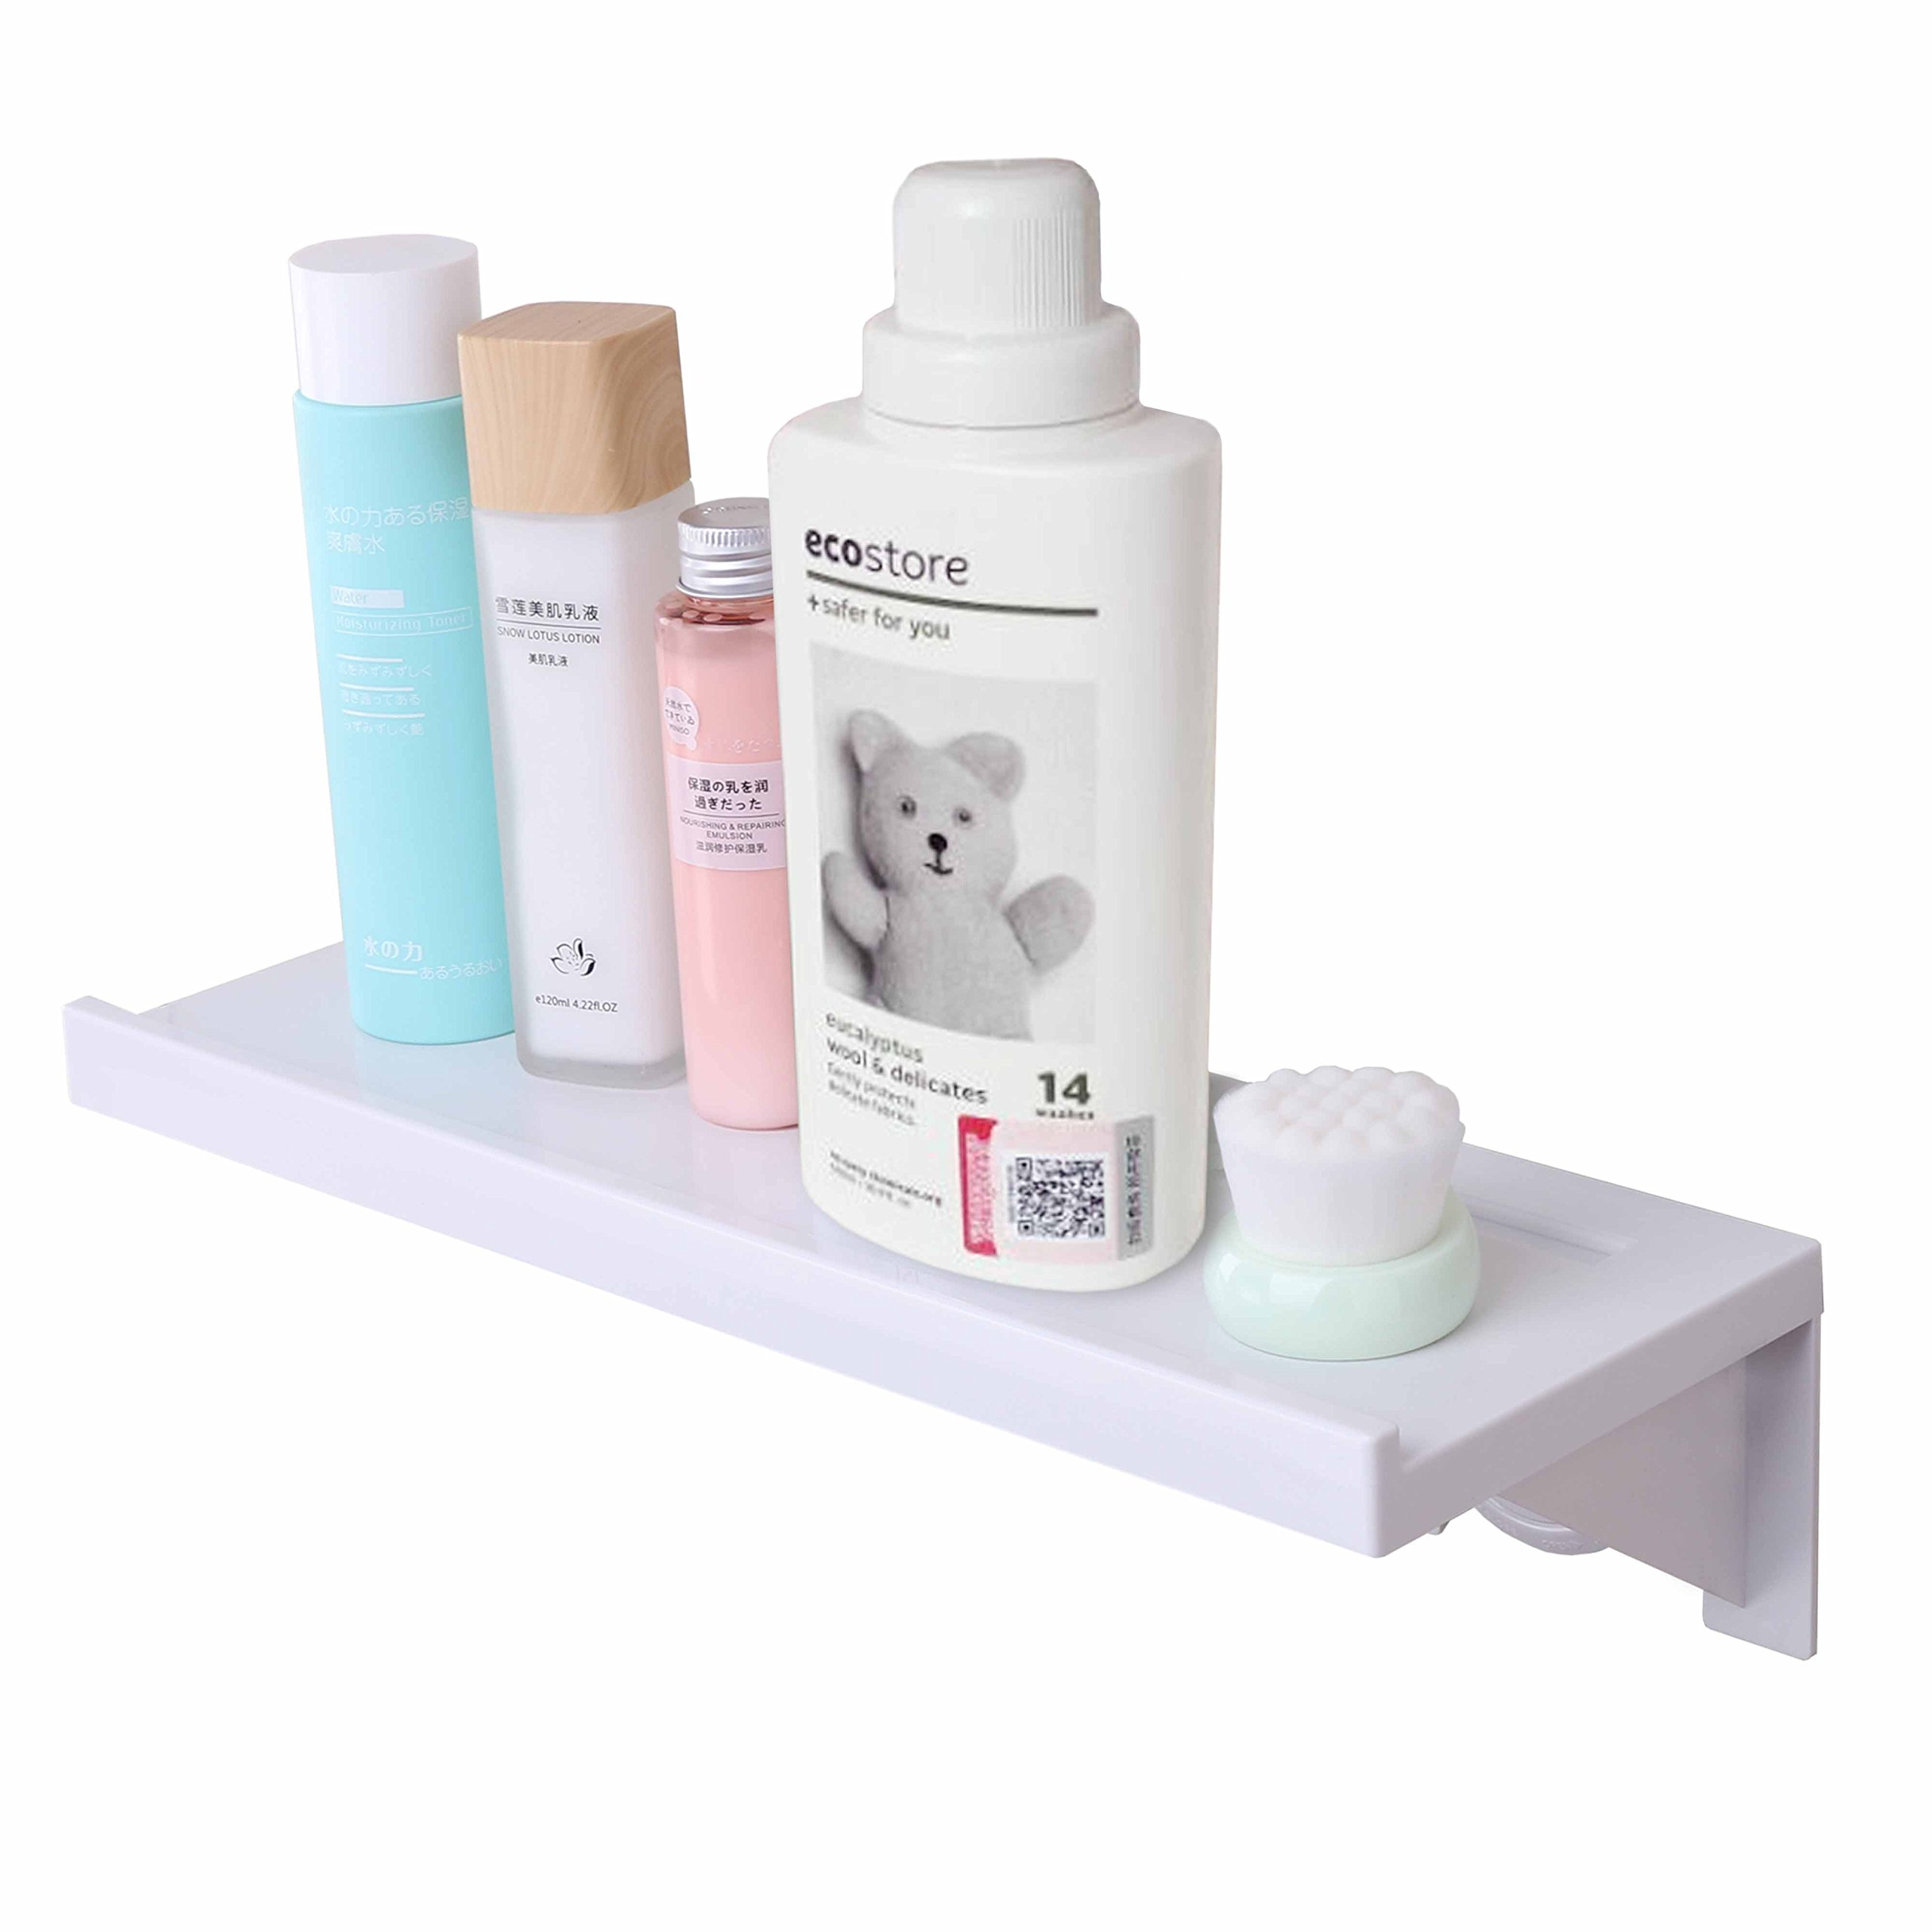 Easy & Eco Life Suction Cup Floating Shelf Bathroom Shower Rack Window Mirror Wall Corner Mounted (No Nails No Tools)